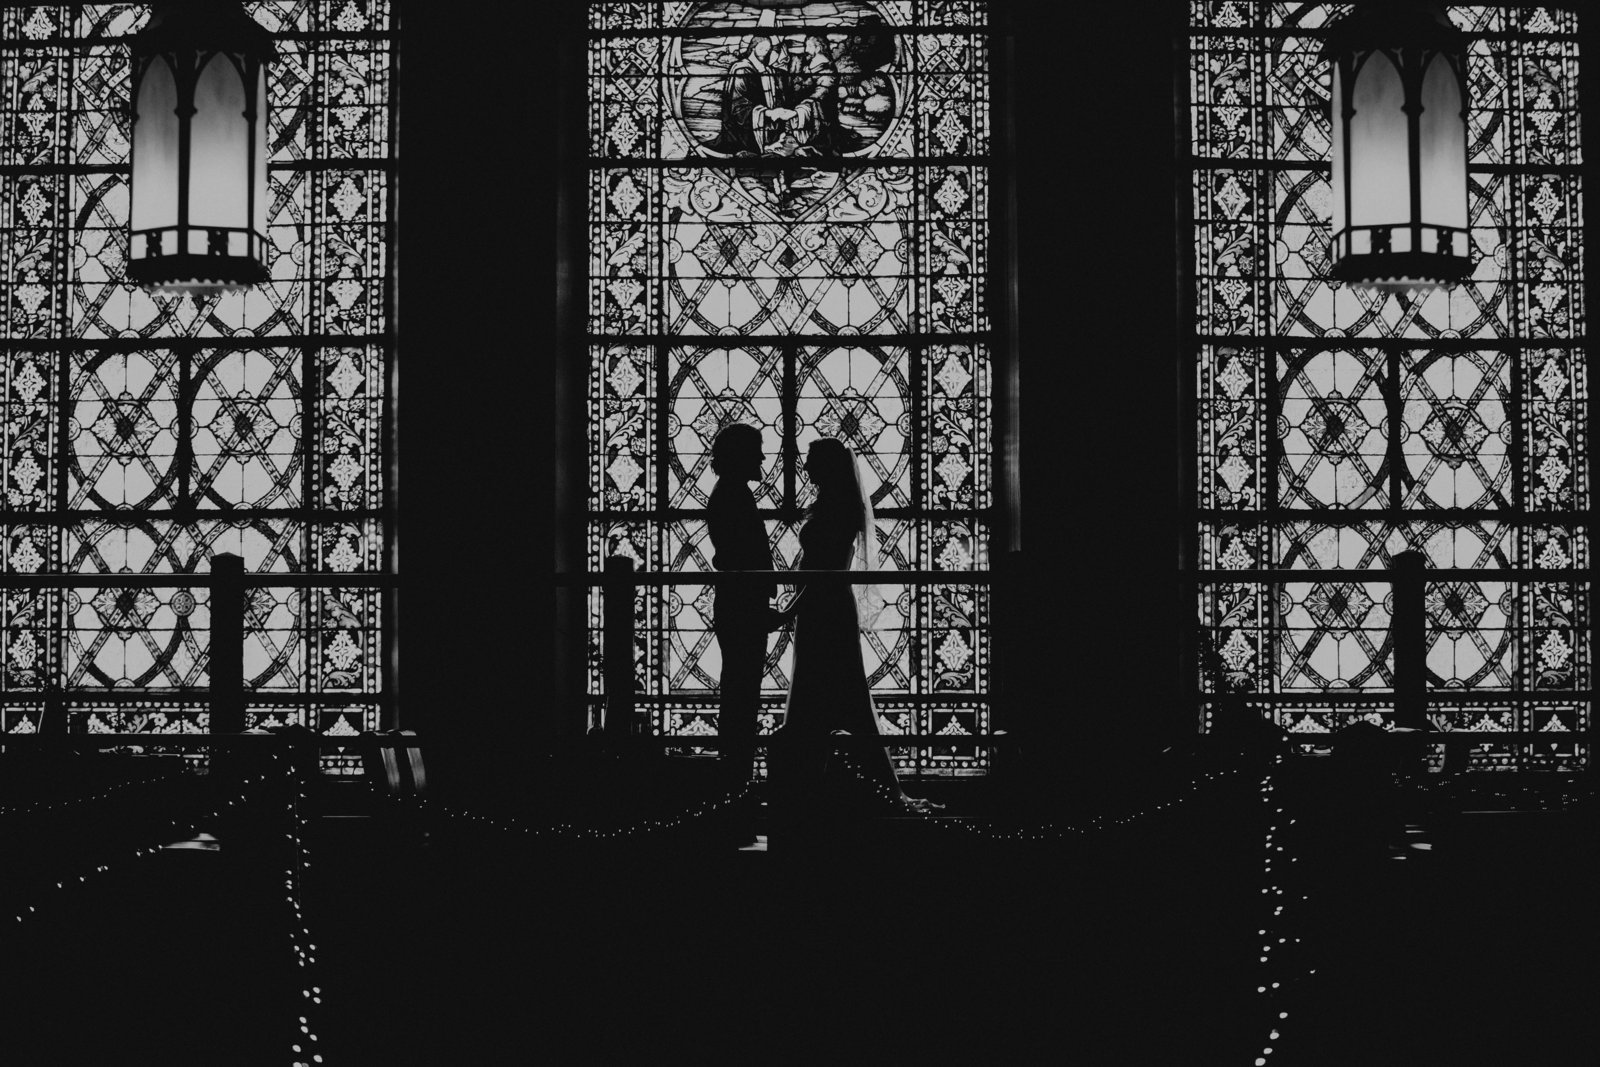 The Bluestone wedding photos silhouette of a bride and groom in front of large stained glass windows